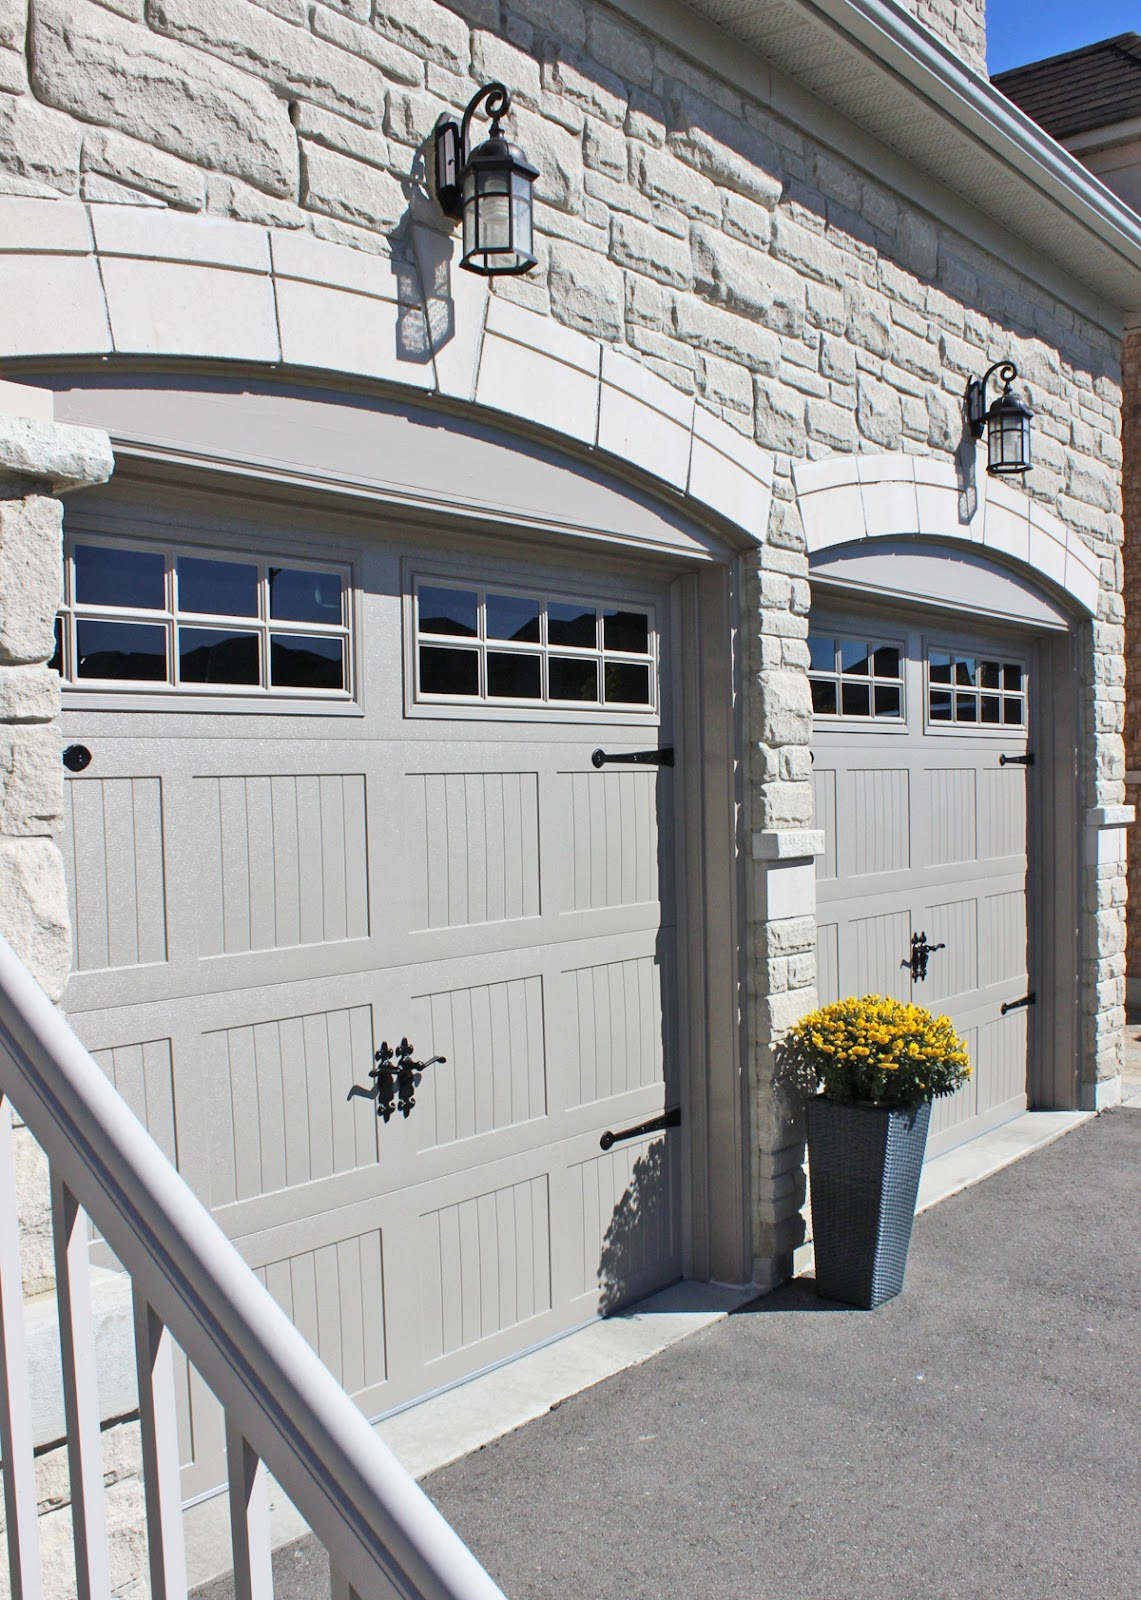 Carriage Garage Doors : Am dolce vita new garage doors